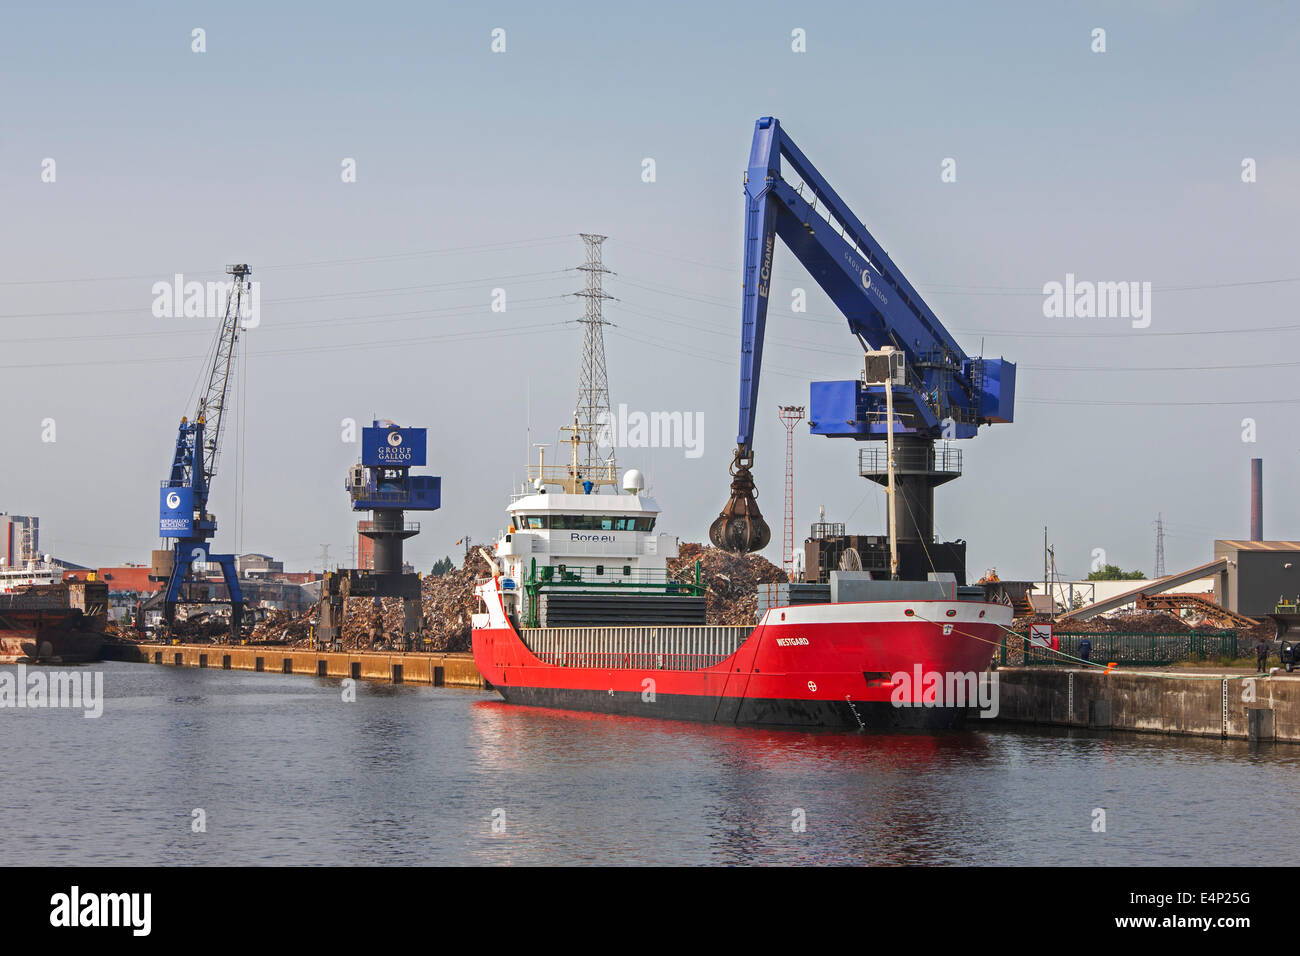 E-Crane, scrap crane loading recycled metal on cargo ship at Van Heyghen Recycling export terminal, port of Ghent, - Stock Image